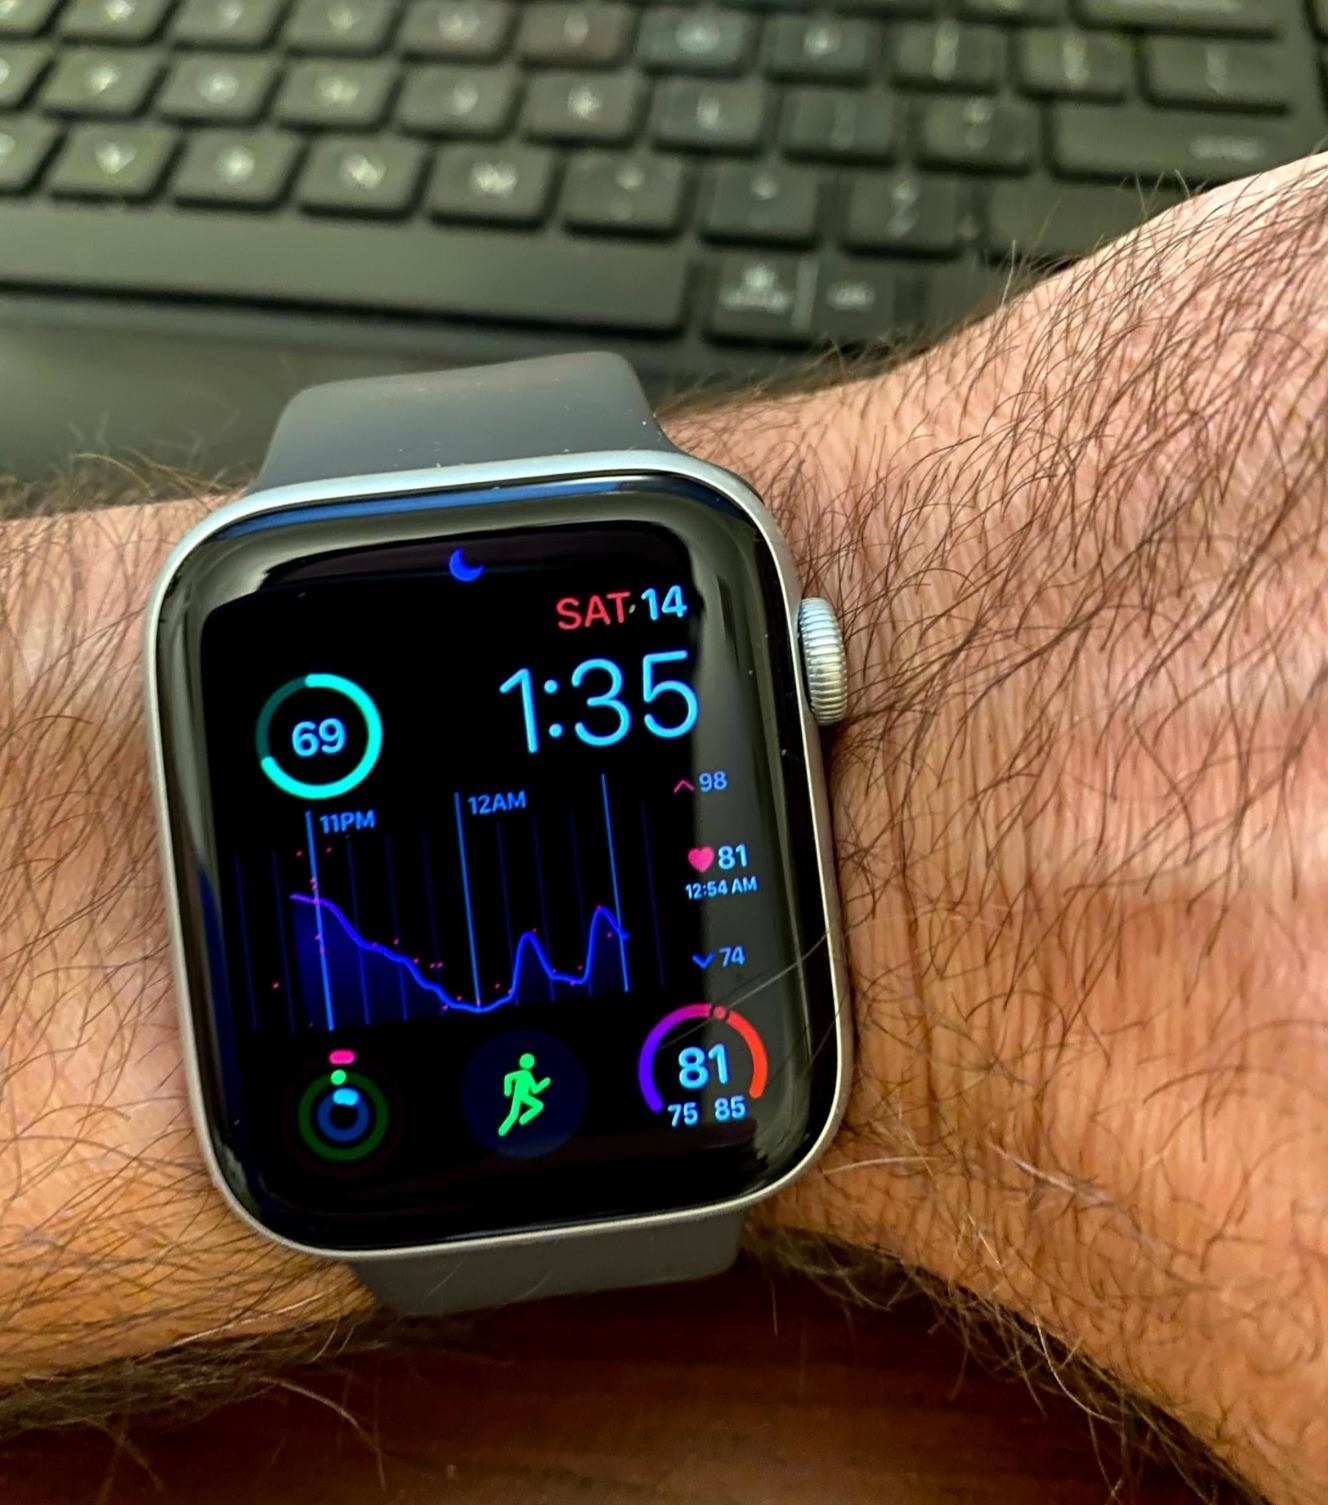 a reviewer's apple watch with their activity log on the screen